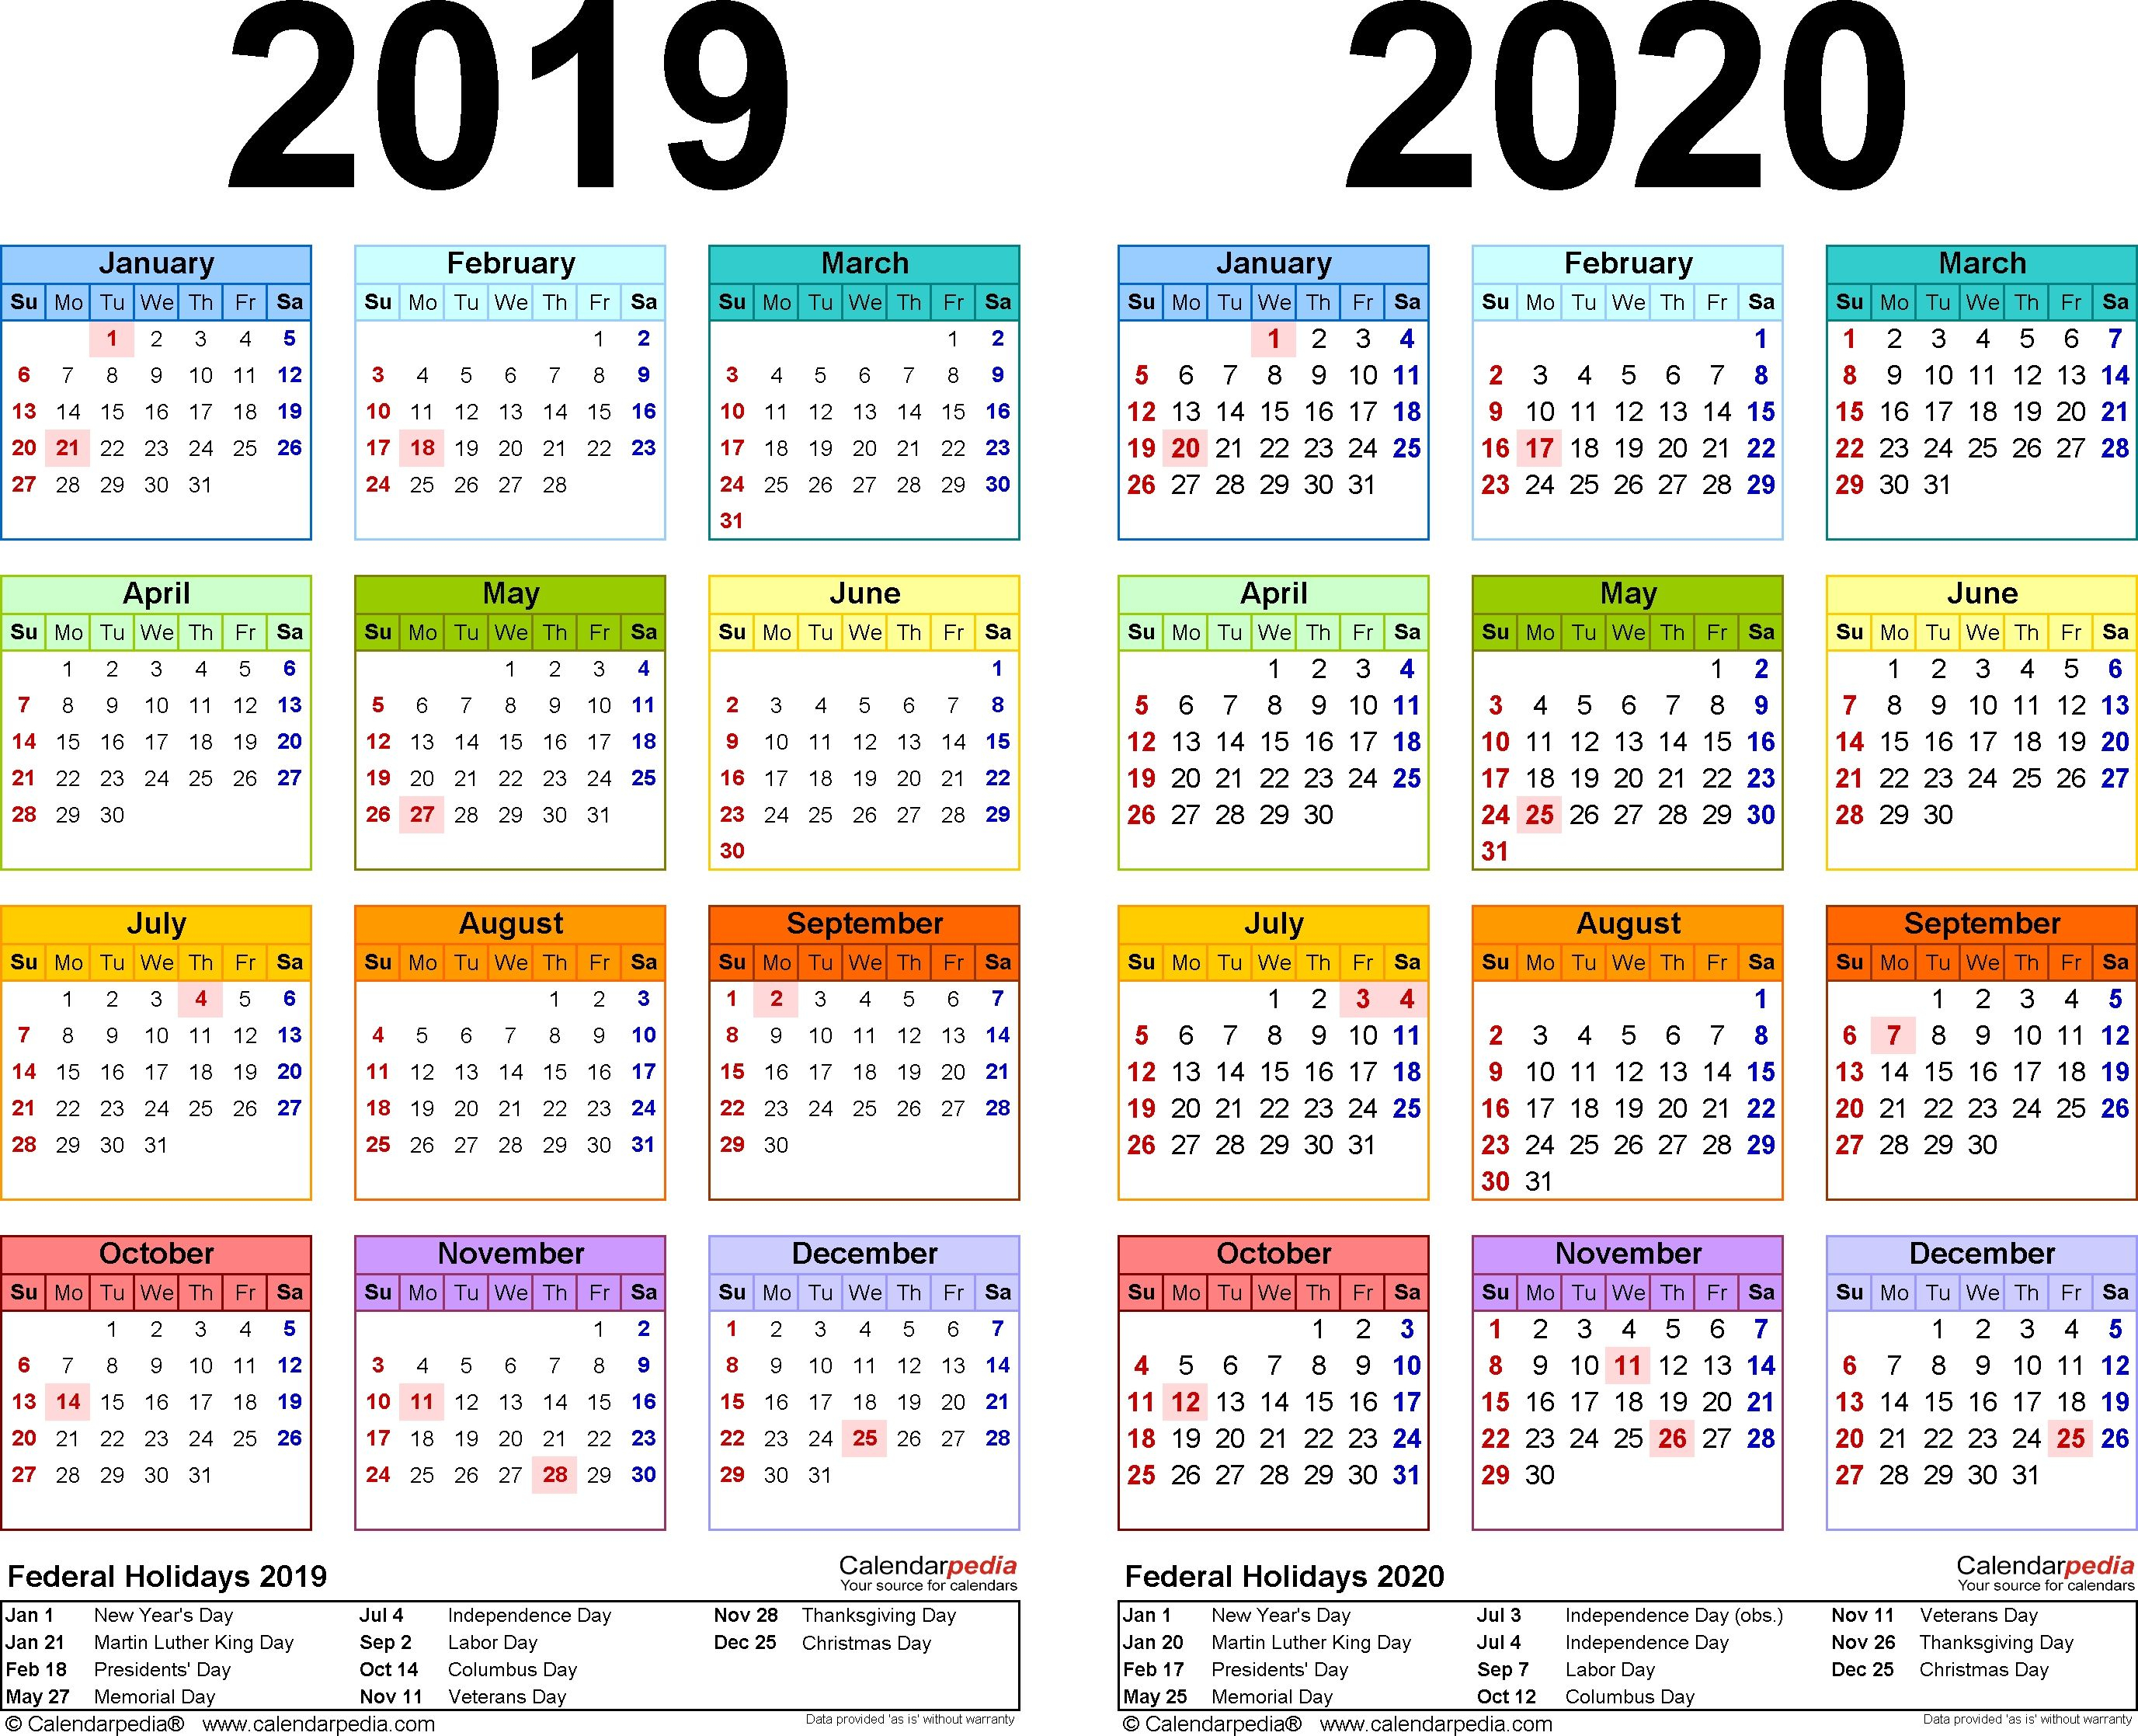 2019-2020 Calendar - Free Printable Two-Year Excel Calendars 2020 intended for 11 X 8.5 Calendar Pages 2020 Free